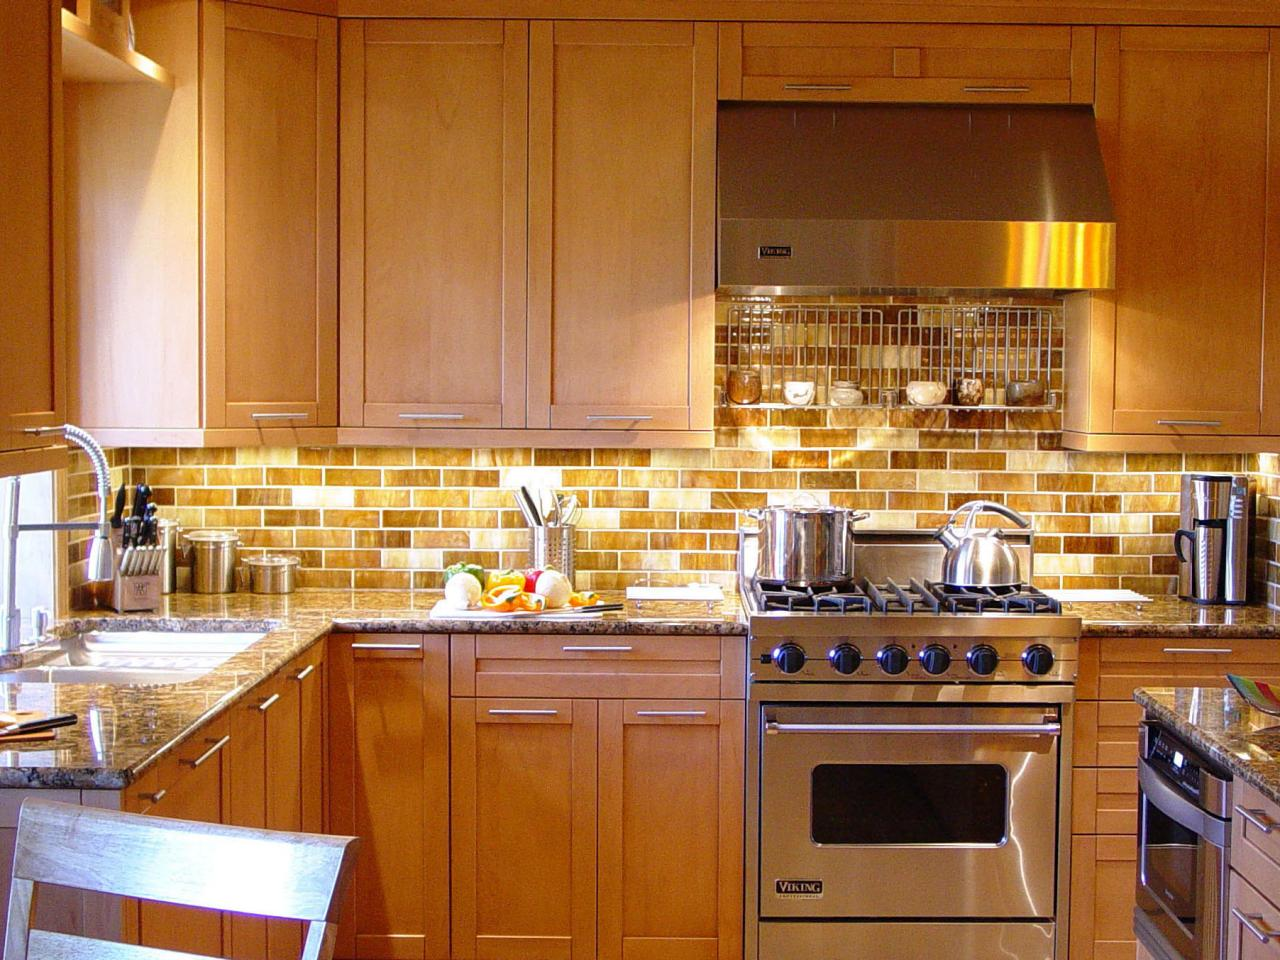 Kitchen backsplash tile ideas hgtv Kitchen backsplash ideas for small kitchens